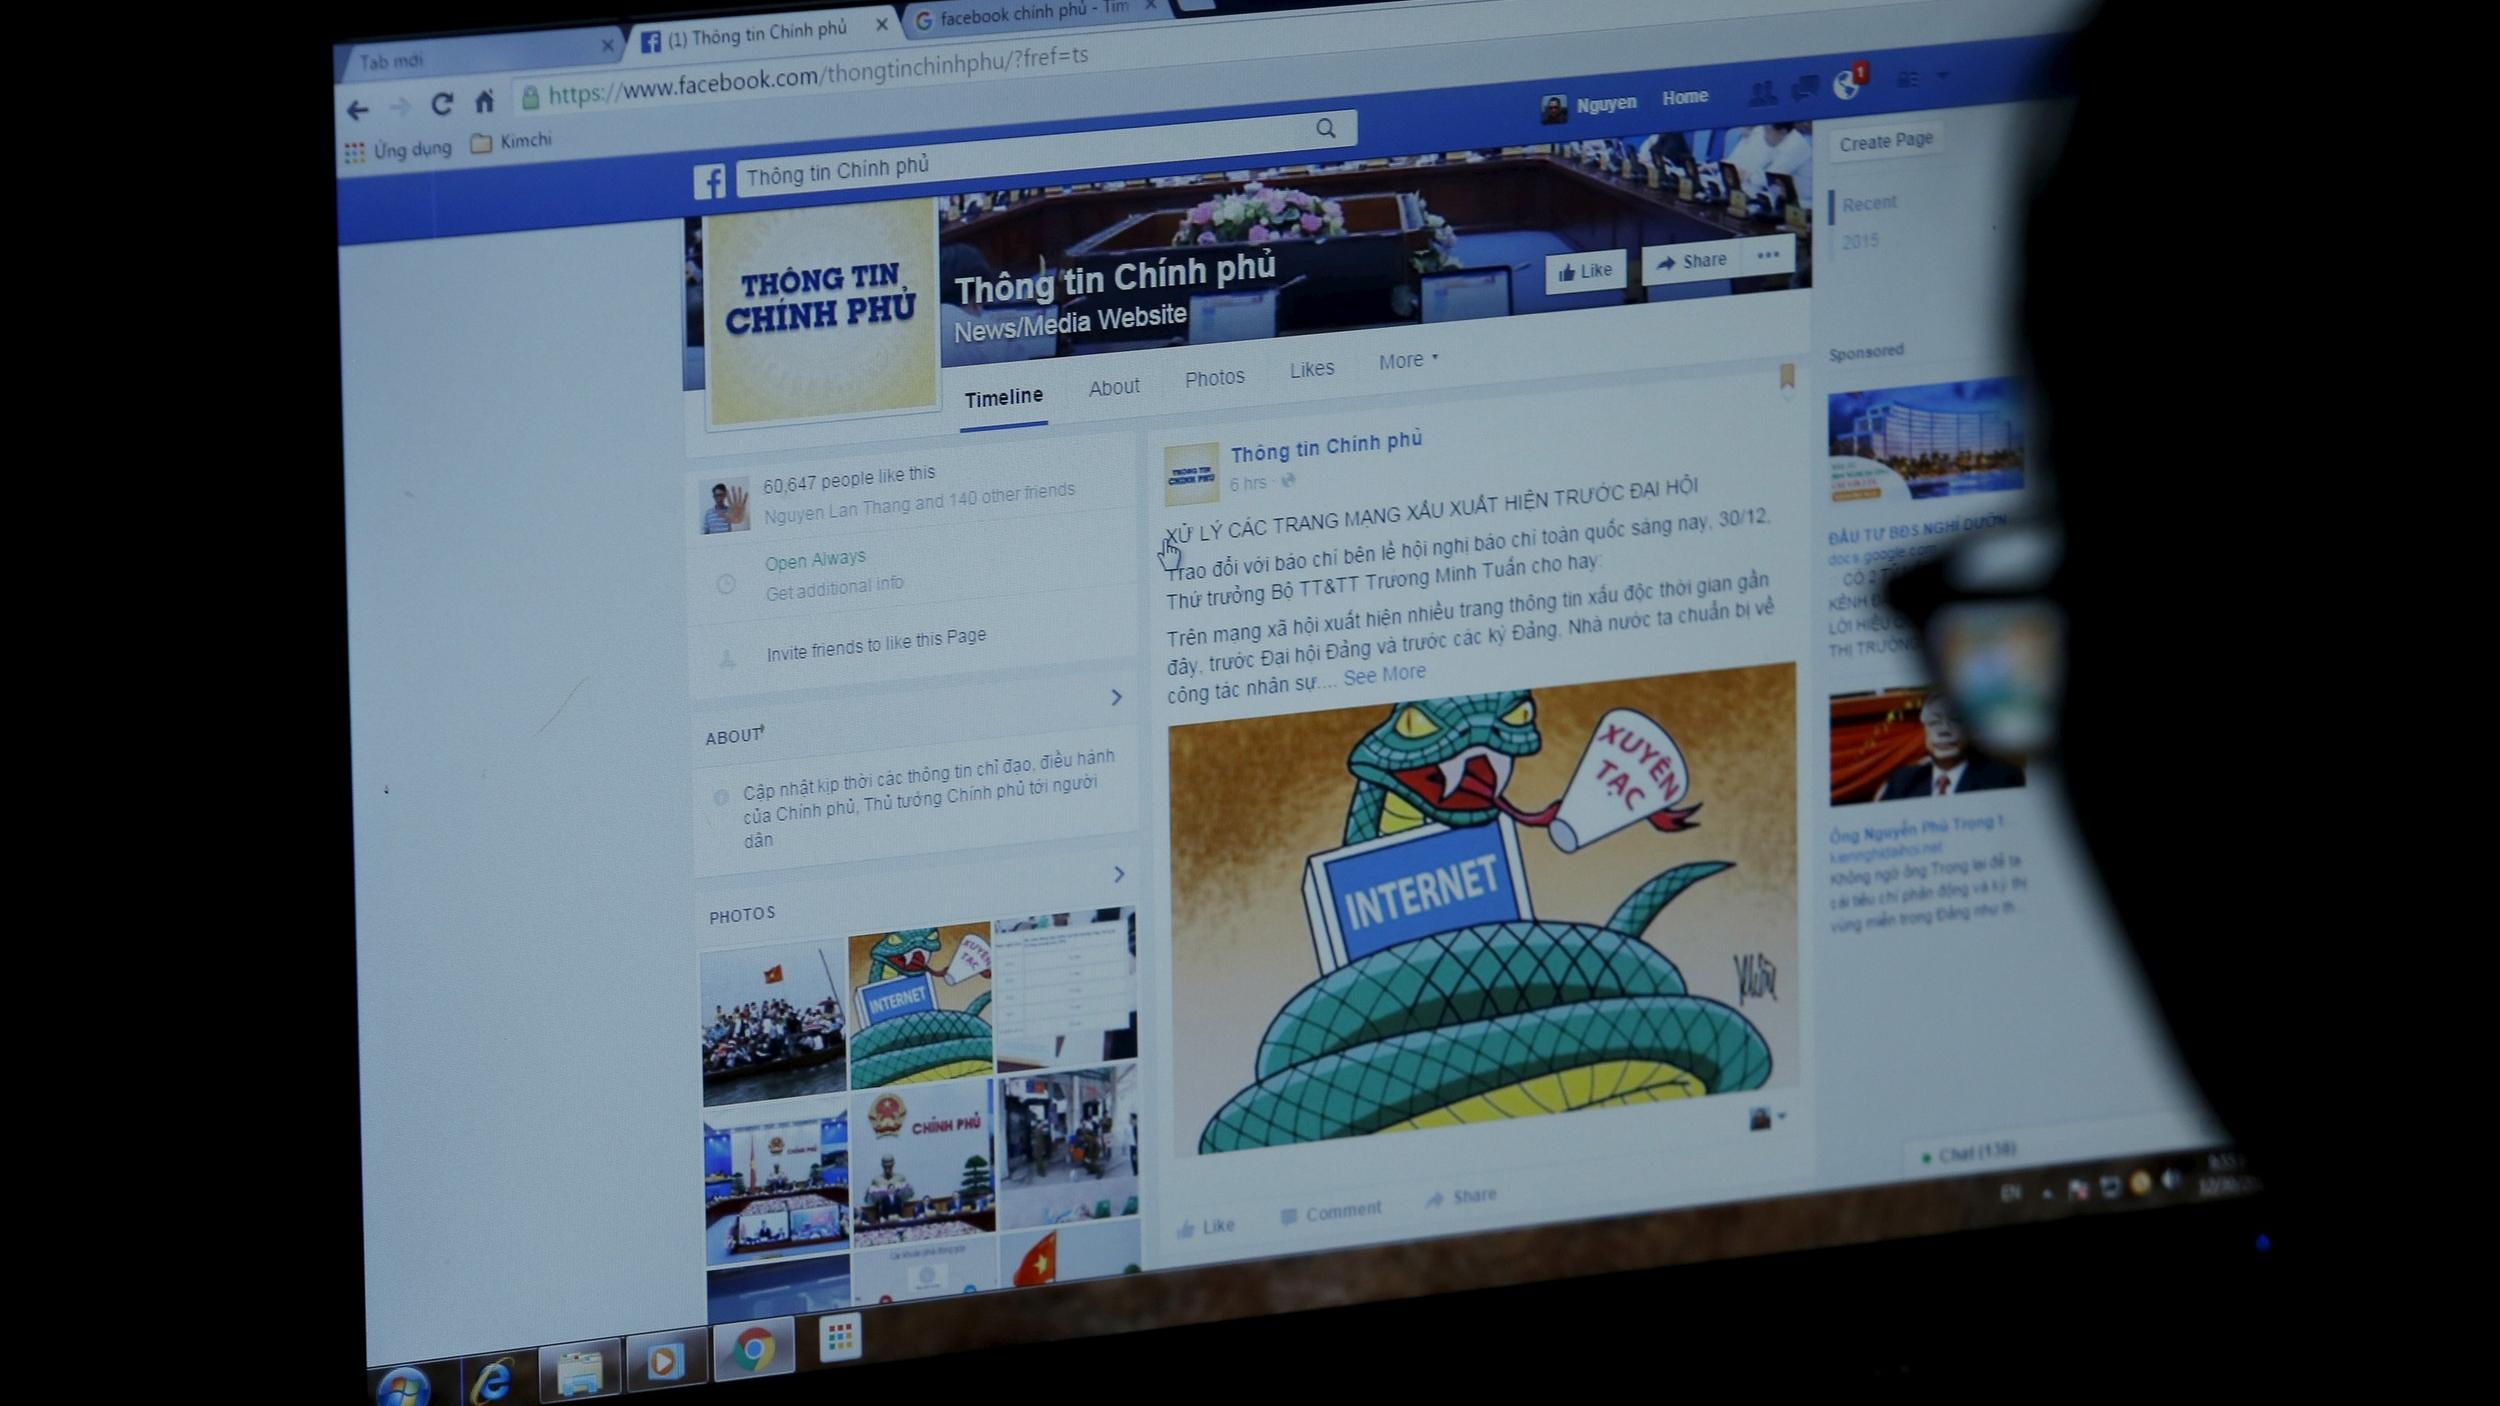 Facebook Bowed to 'Vietnam's Extortion' by Censoring Content, Human Rights Watch Says